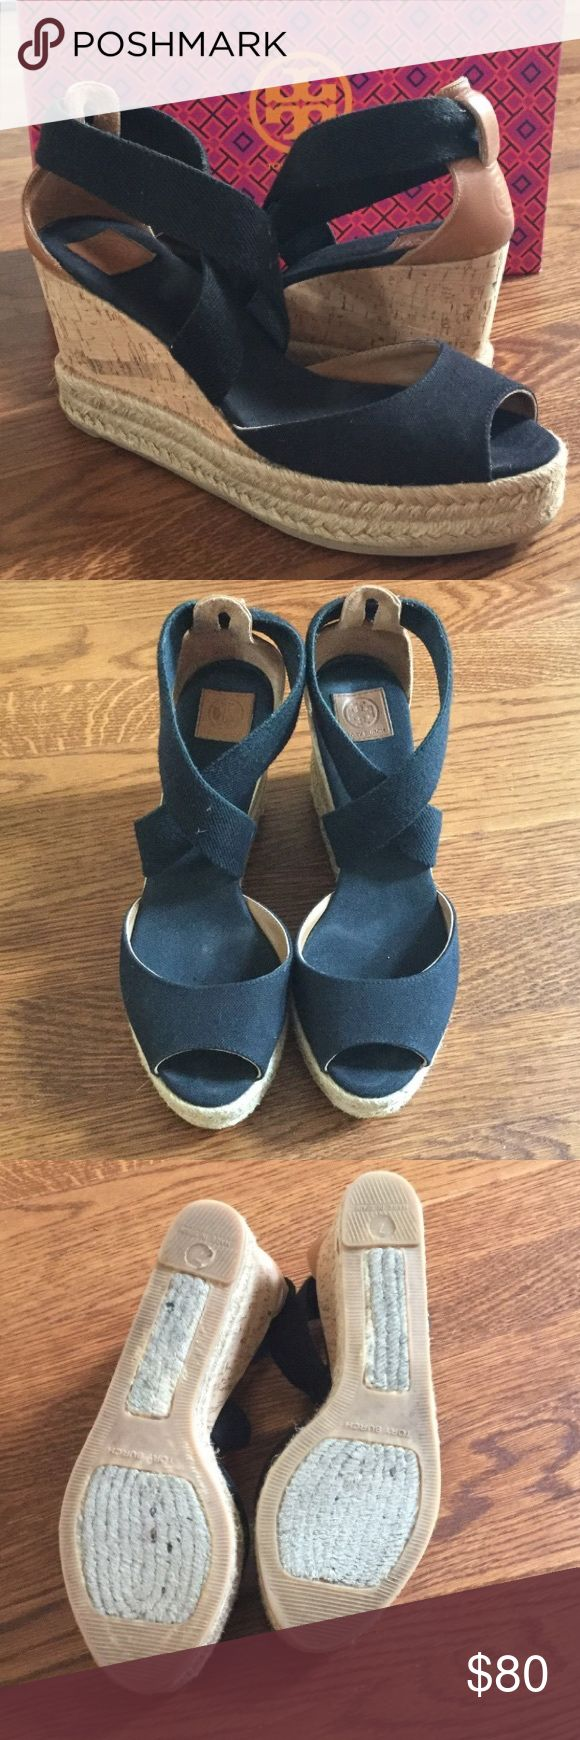 Tory Burch black espadrille wedges EUC espadrille wedges. Black. Tory Burch Shoes Espadrilles